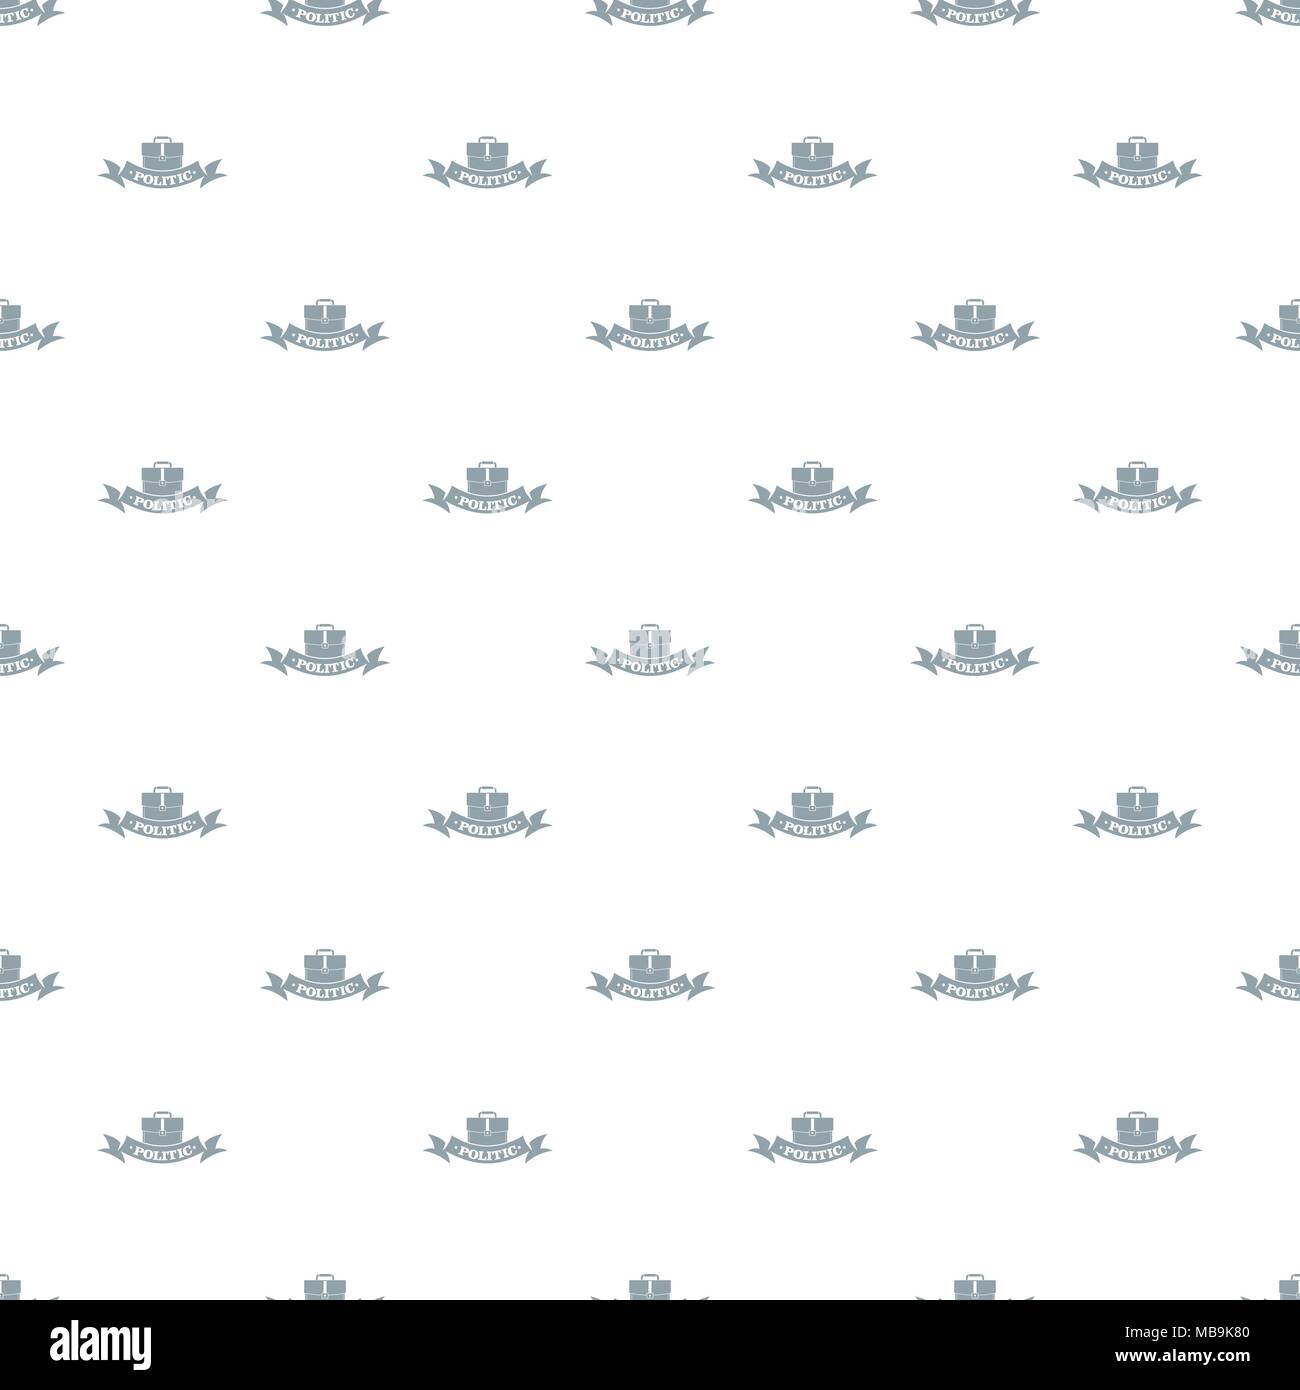 Politic pattern vector seamless - Stock Image